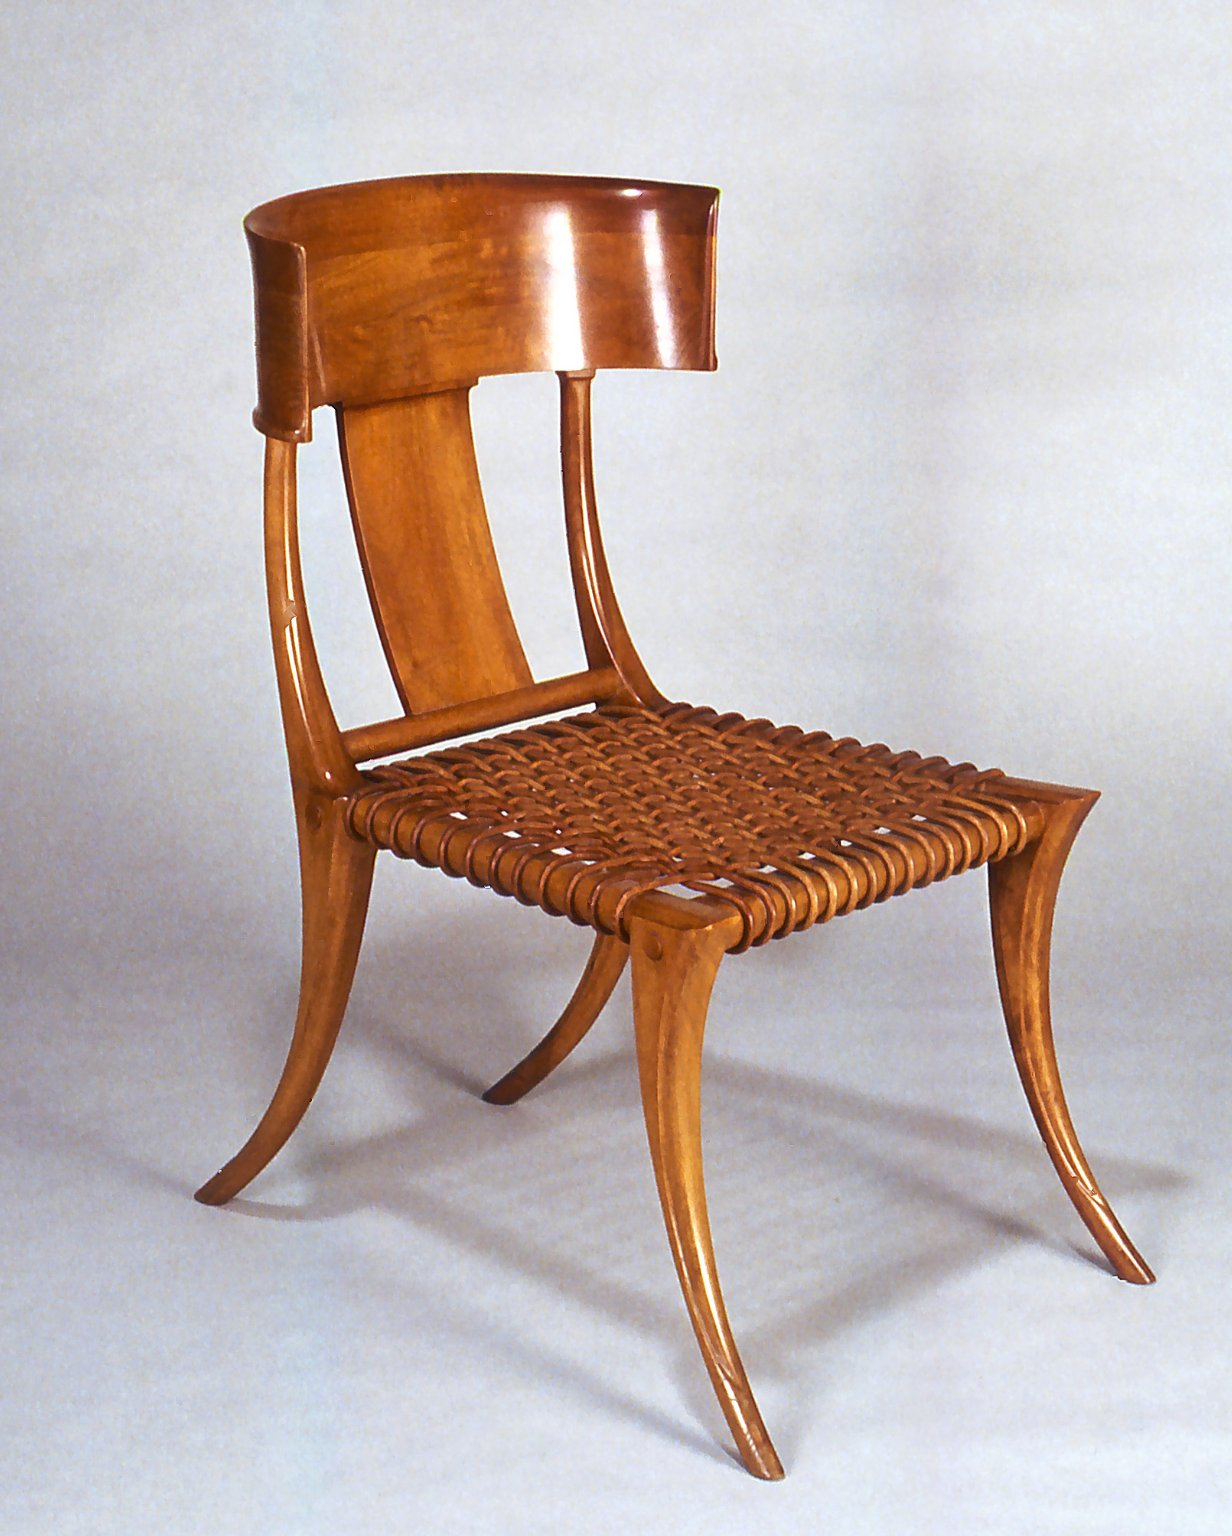 Ordinaire Klismos Side Chair With Cushion, 1961. Walnut, Leather, Fabric, Overall: 35  3/8 X 20 7/8 X 28 1/4 In. (89.9 X 53 X 71.8 Cm). Brooklyn Museum, H.  Randolph ...